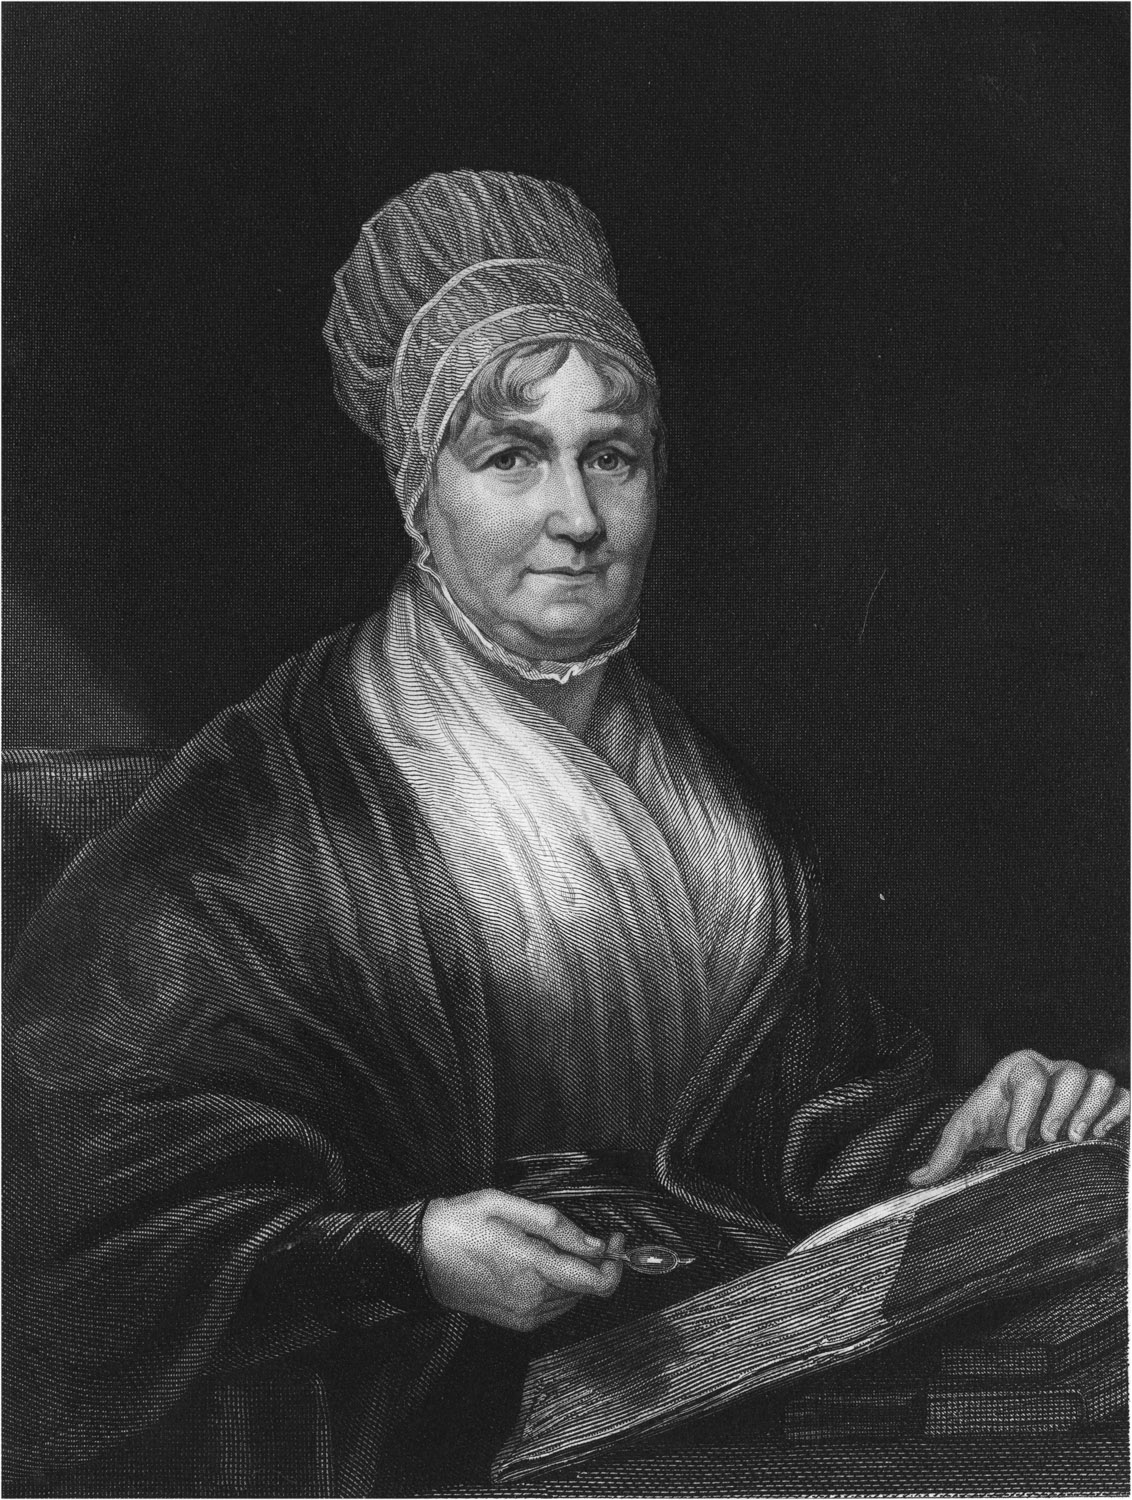 Letter from Jane Franklin in Van Diemen's Land 1841 to Elizabeth Fry in England, and her reply, 1842